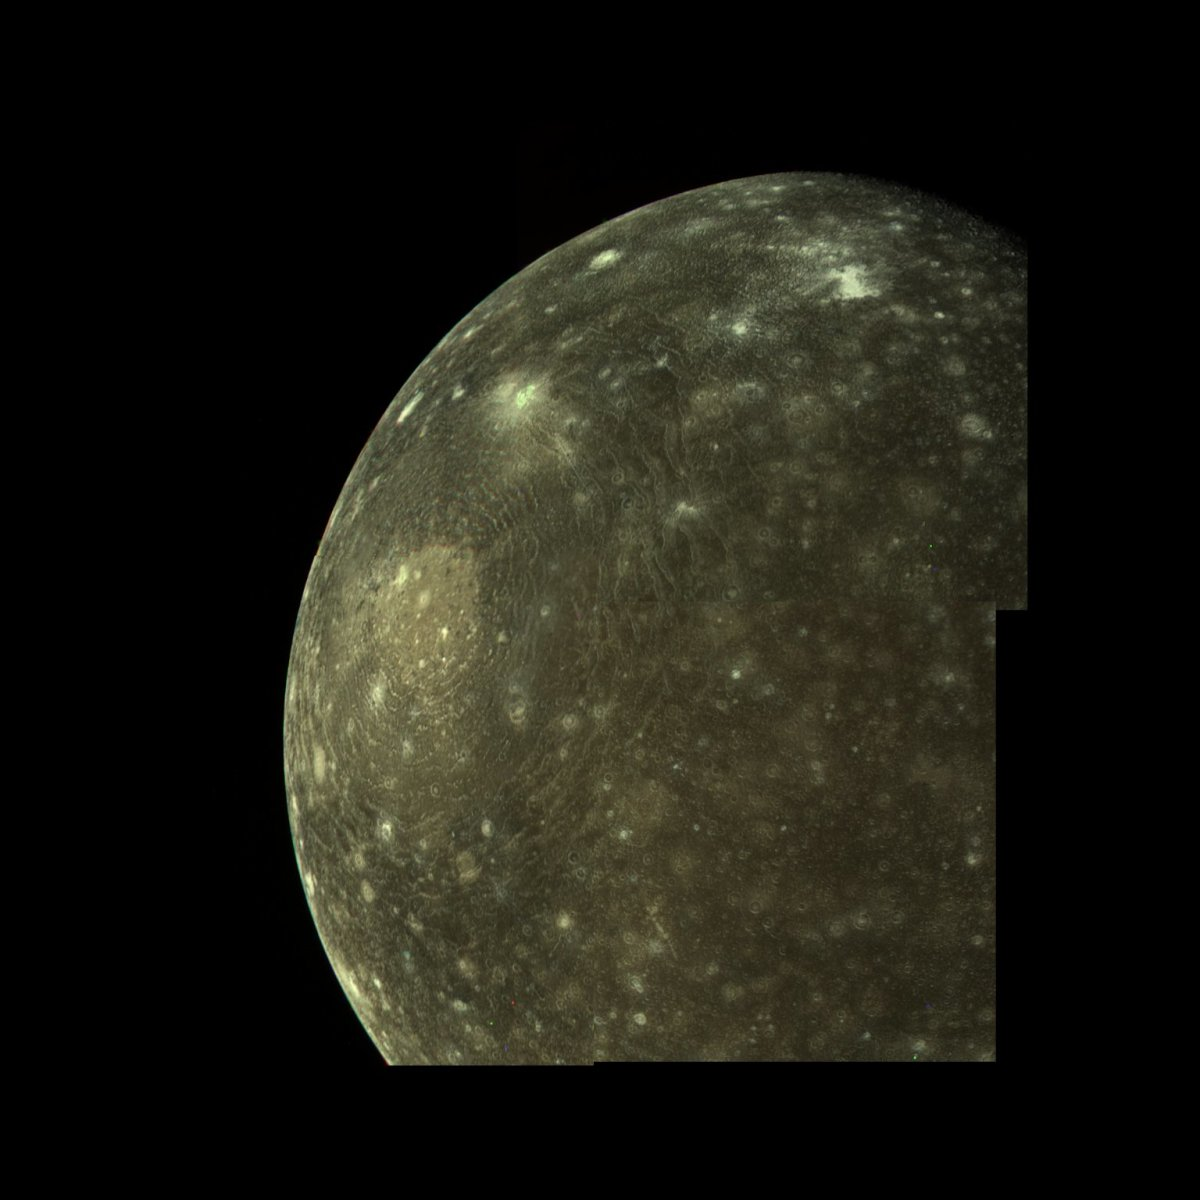 Callisto, the third largest moon in the Solar System.